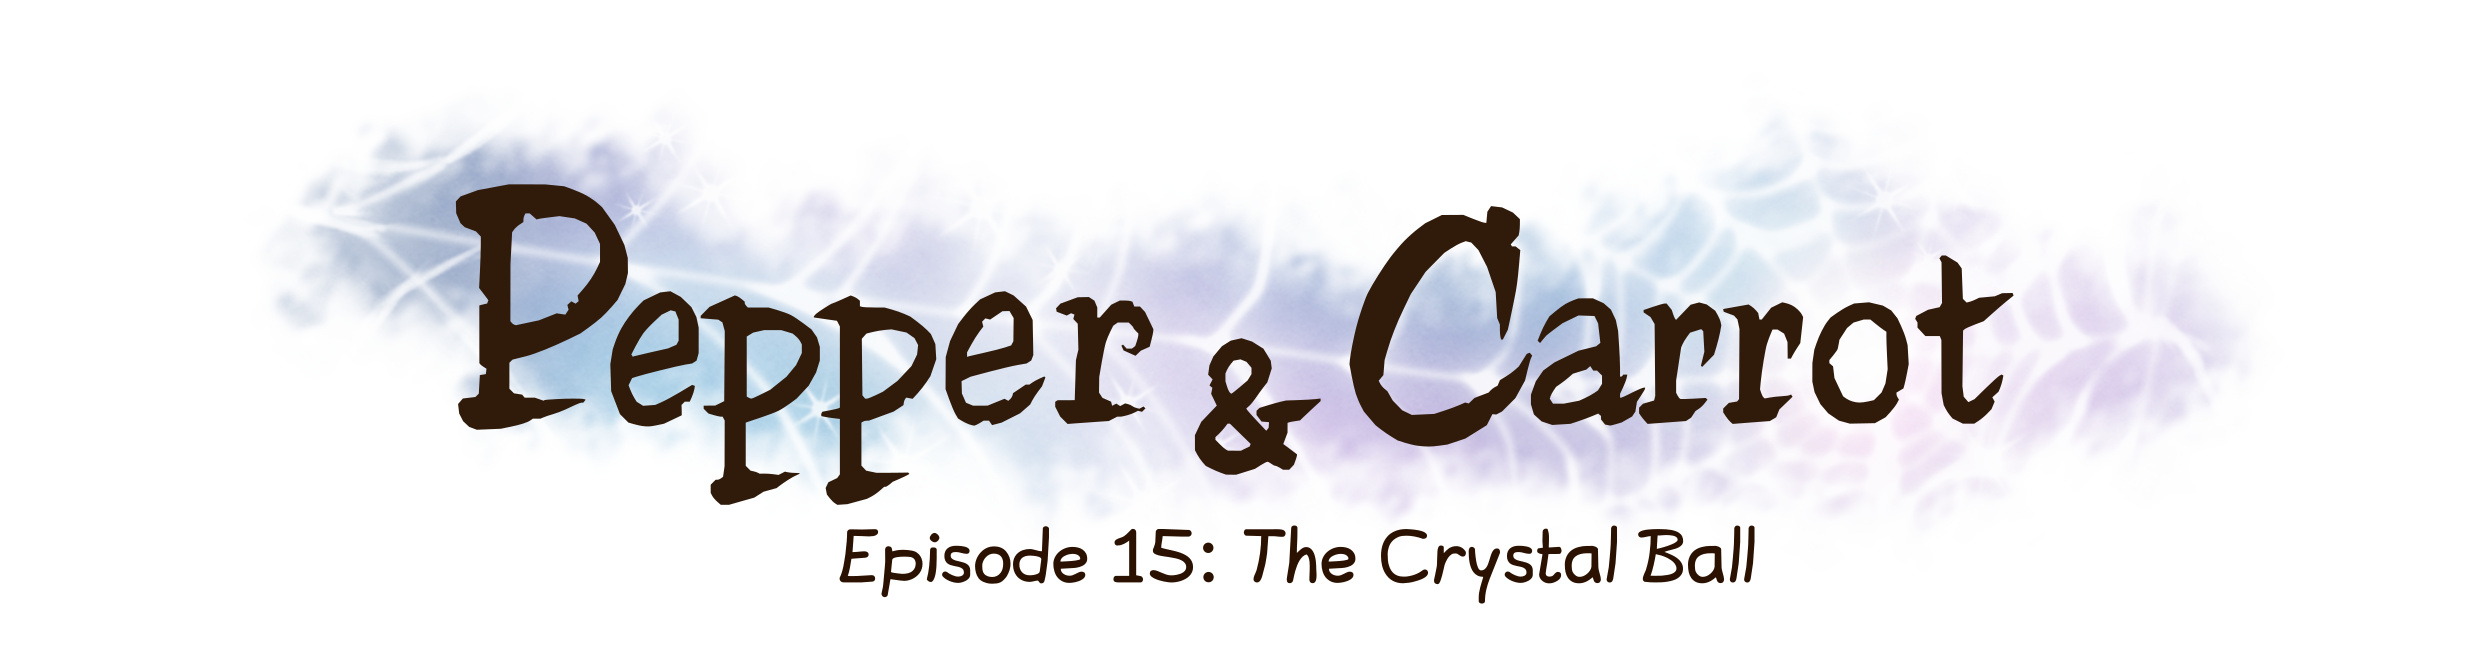 Episode 15: The Crystal Ball